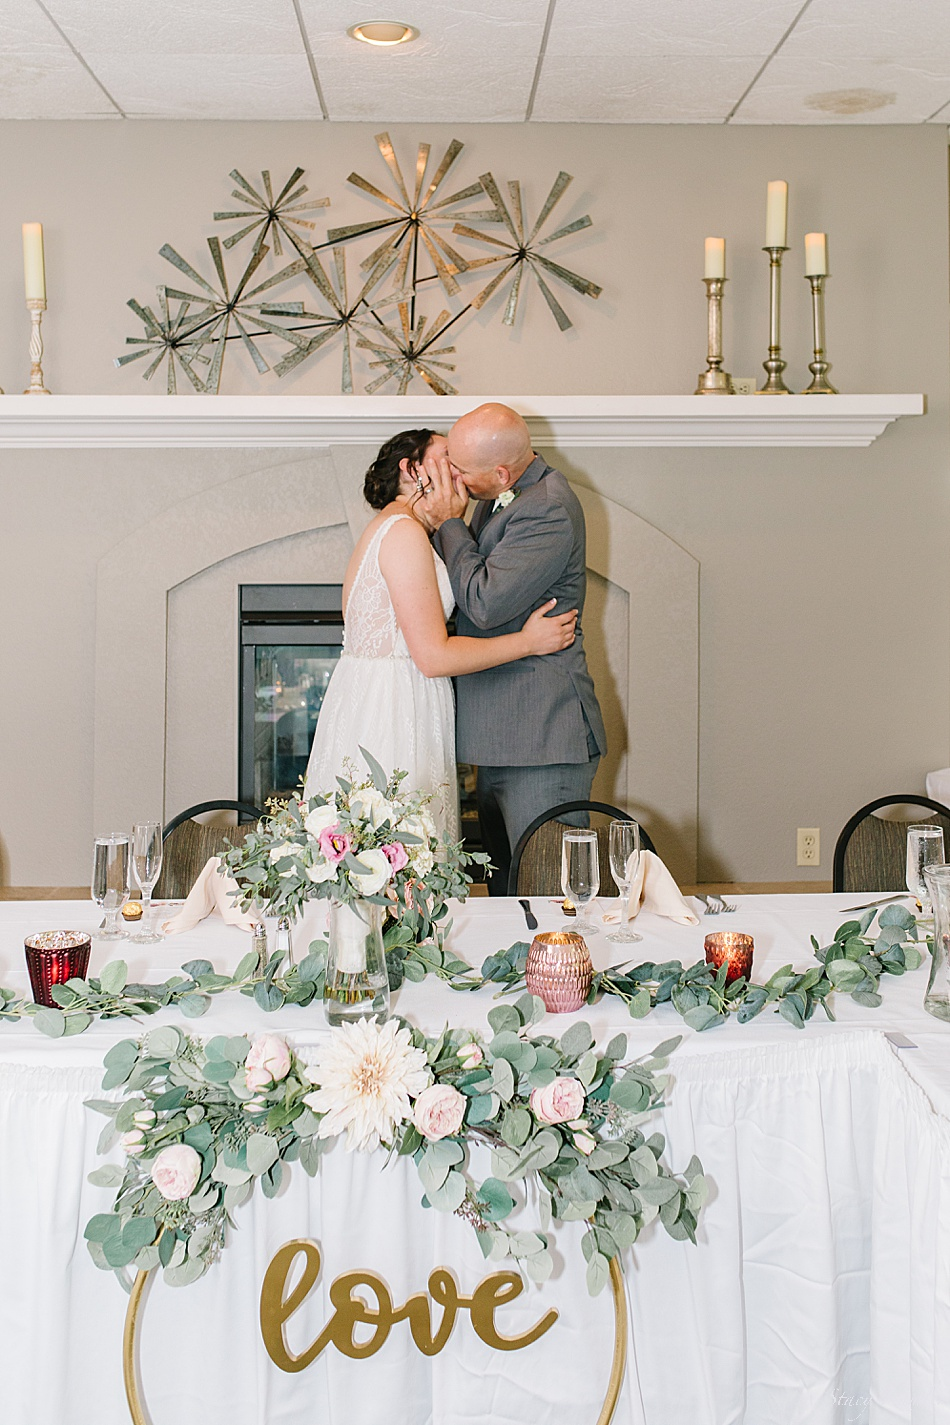 Kisses at the head table